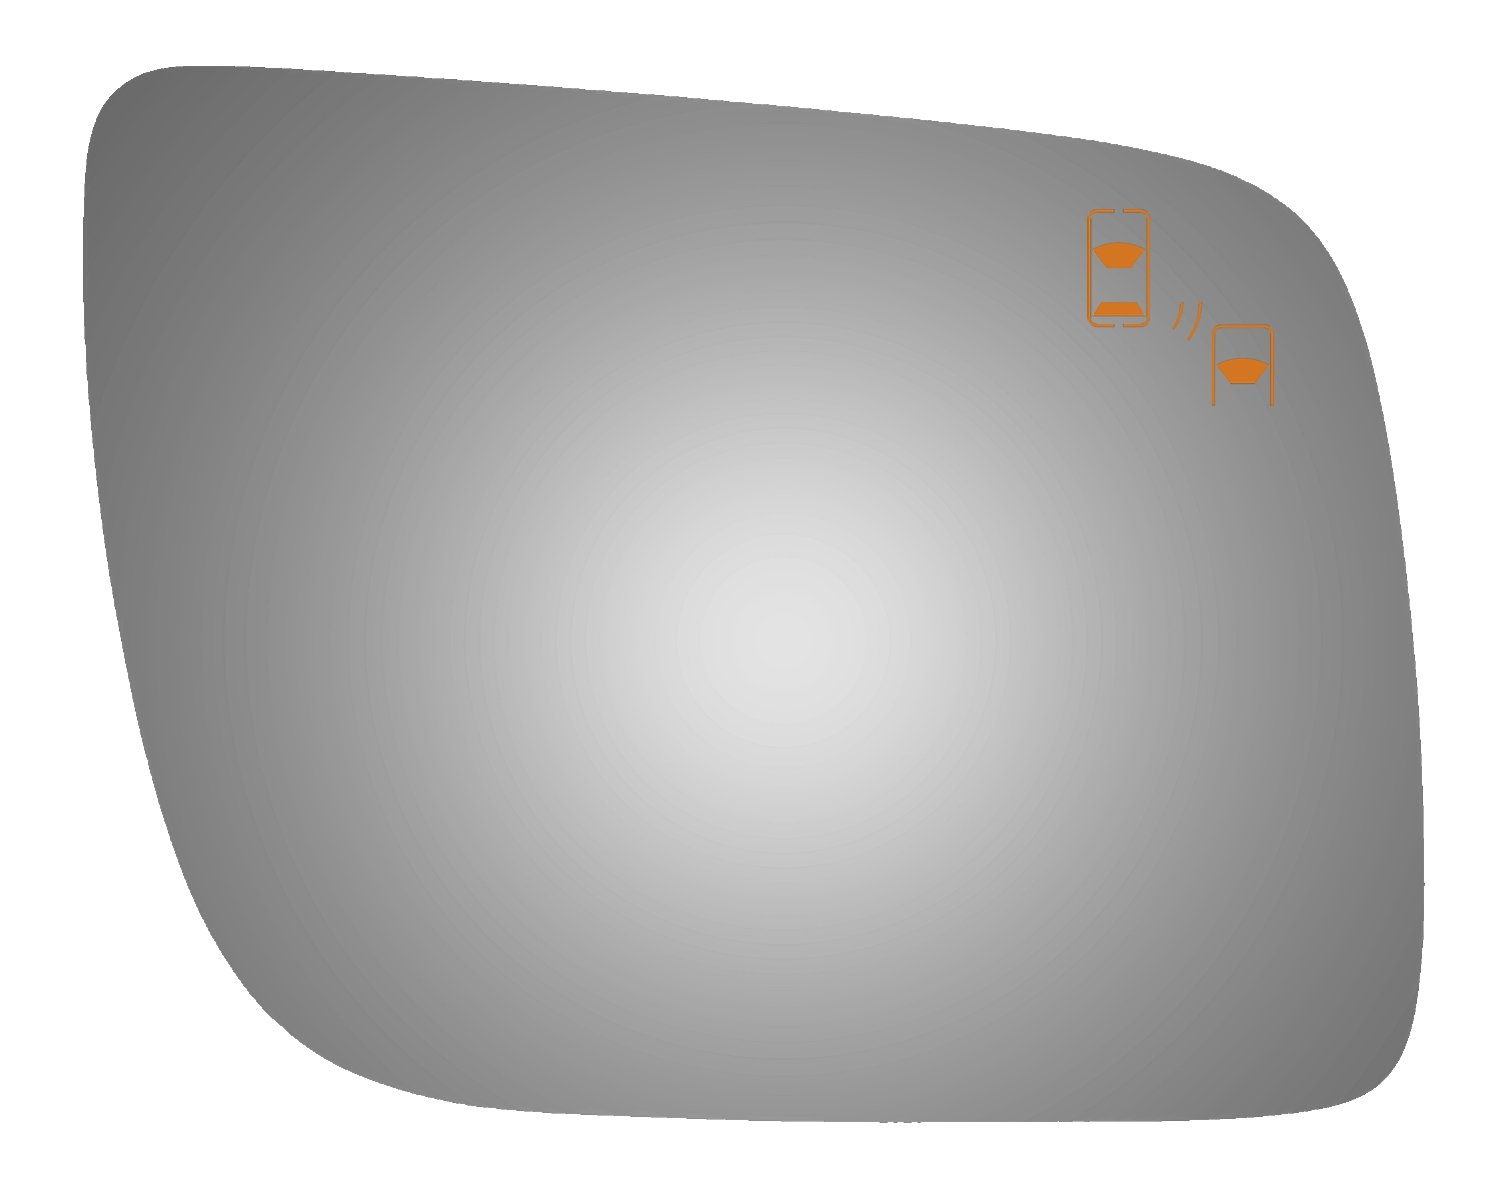 Burco 5484B Convex Passenger Side Power Replacement Mirror Glass for 11-16 Ford Explorer (2011, 2012, 2013, 2014, 2015, 2016)